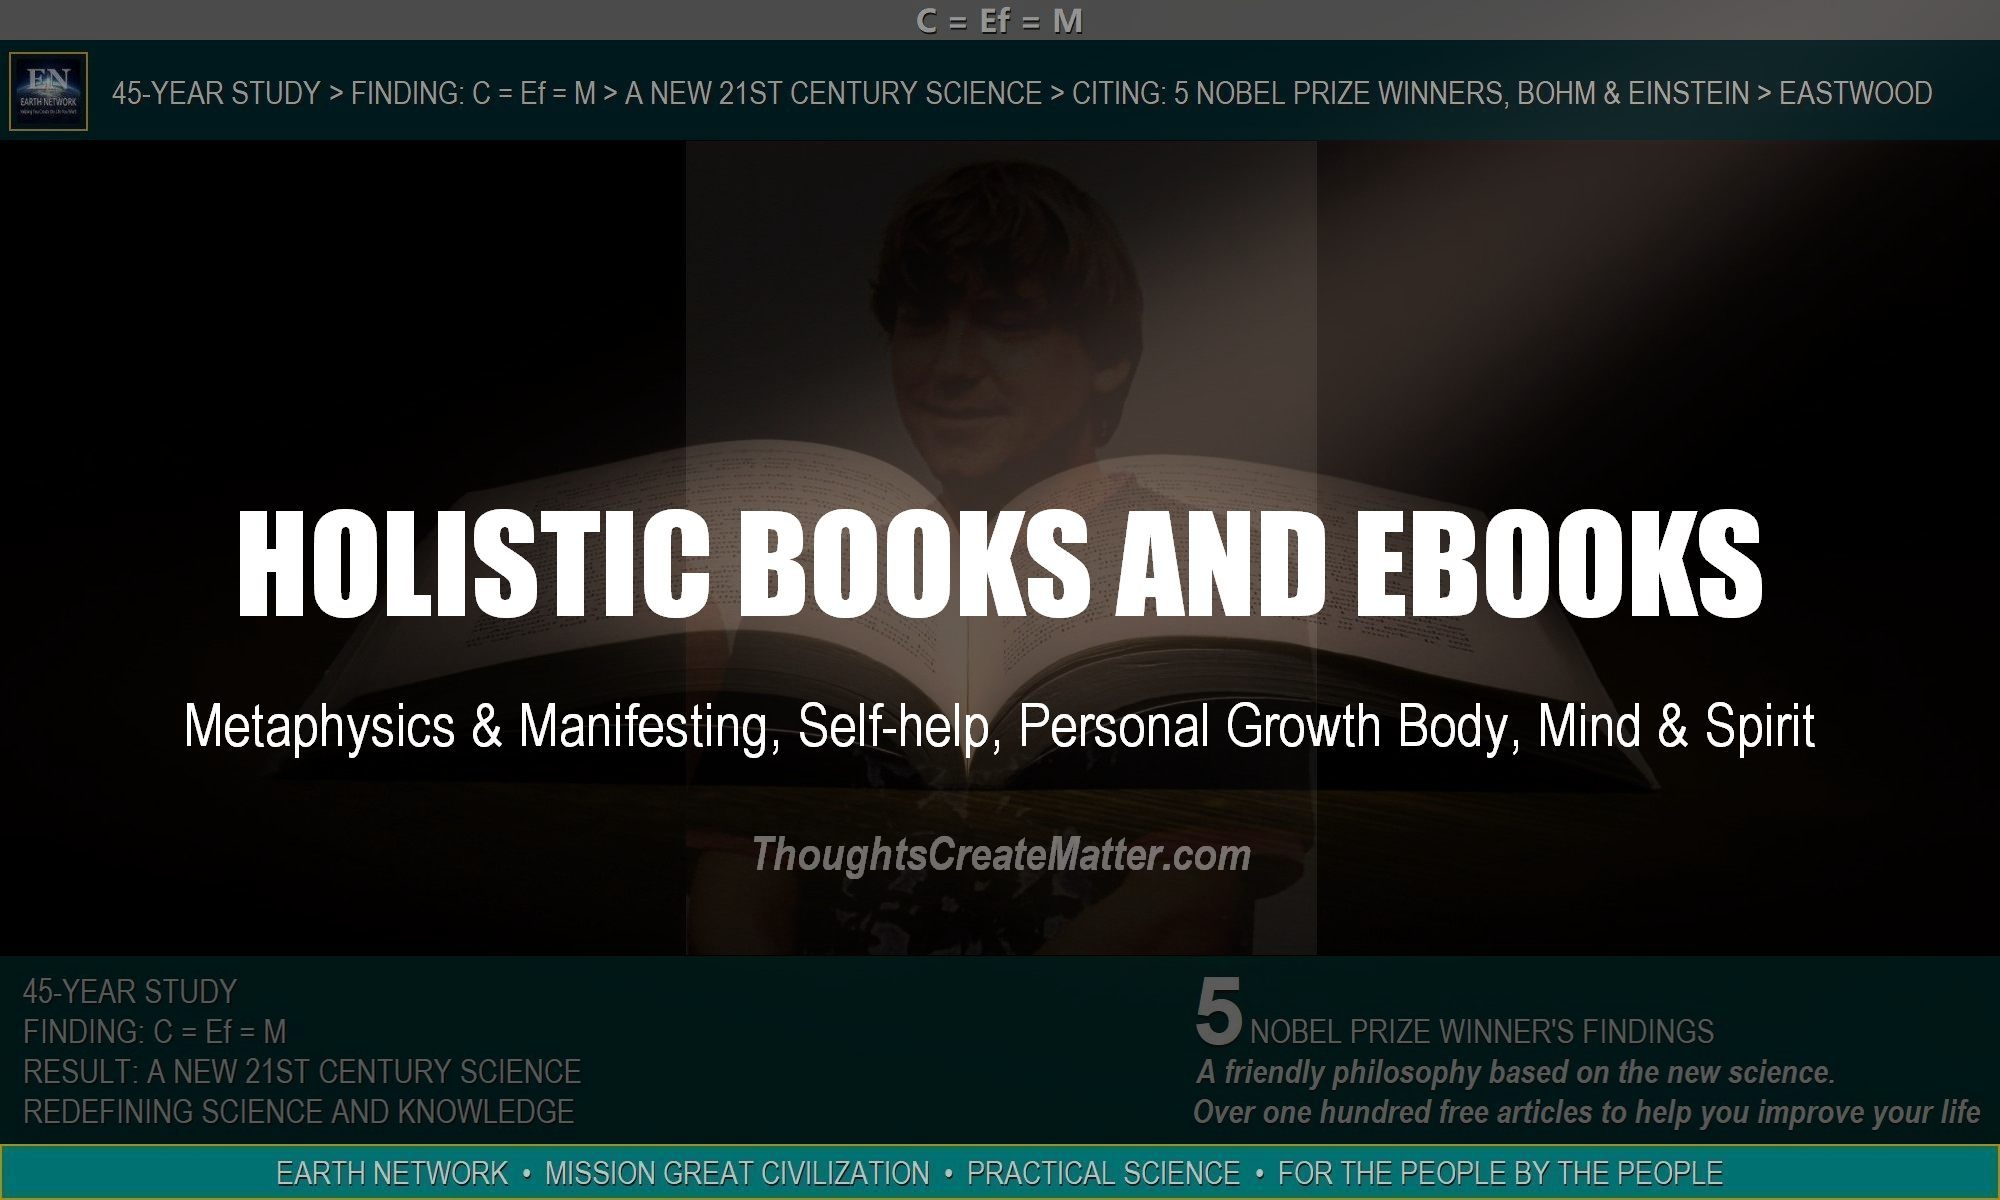 William Eastwood provides holistic books and ebooks on metaphysics manifesting, self-help. Best books on personal growth body, mind and spirit